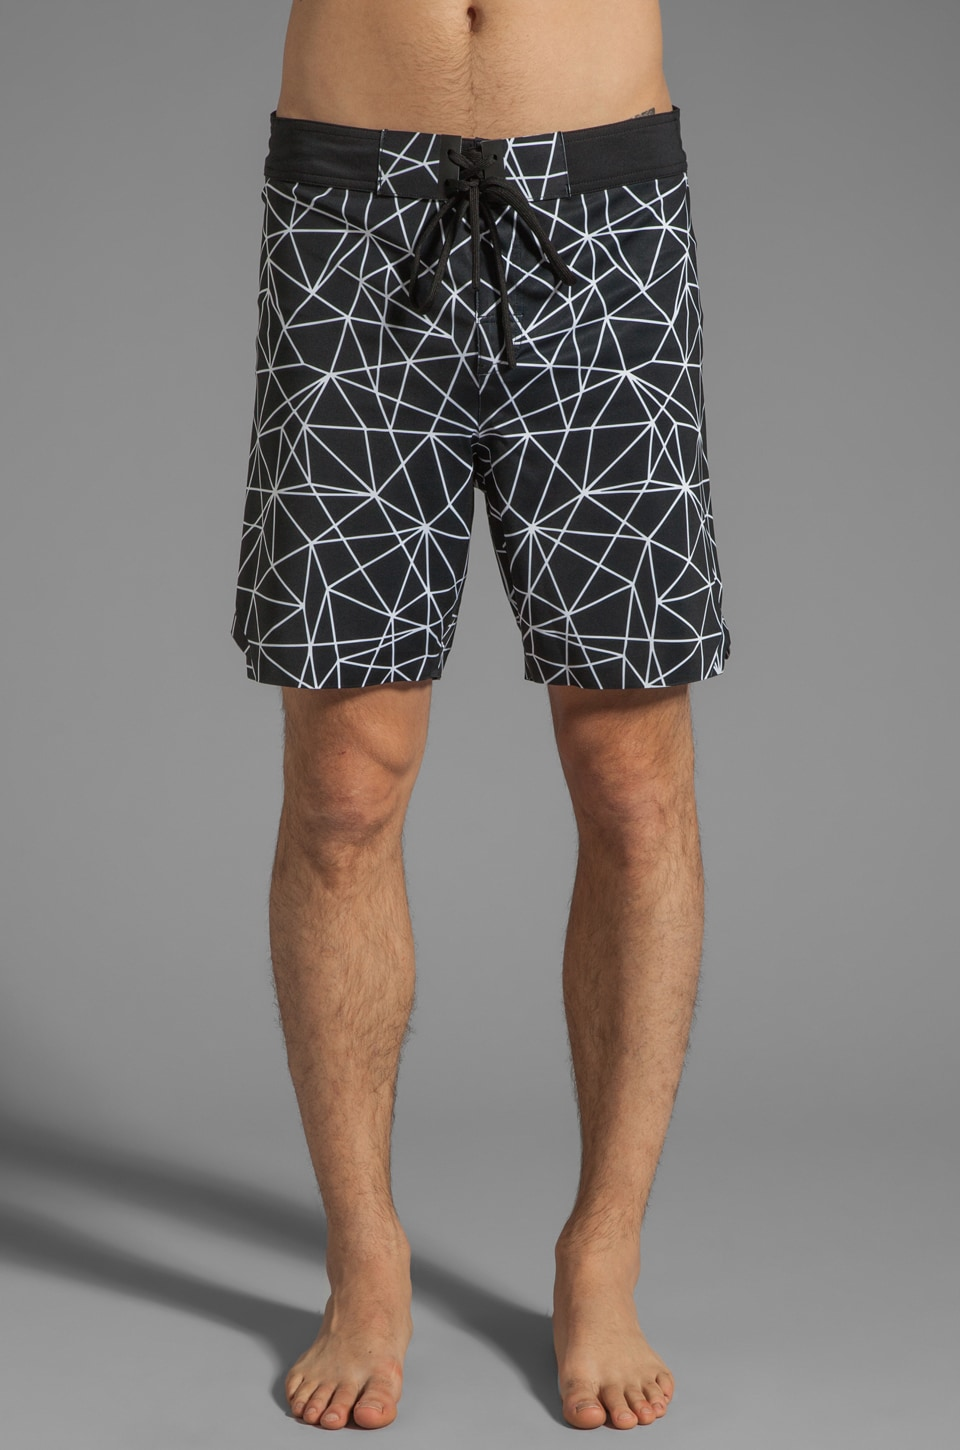 ISAORA Geo Light Printed Welded Stretch Board Short in Black